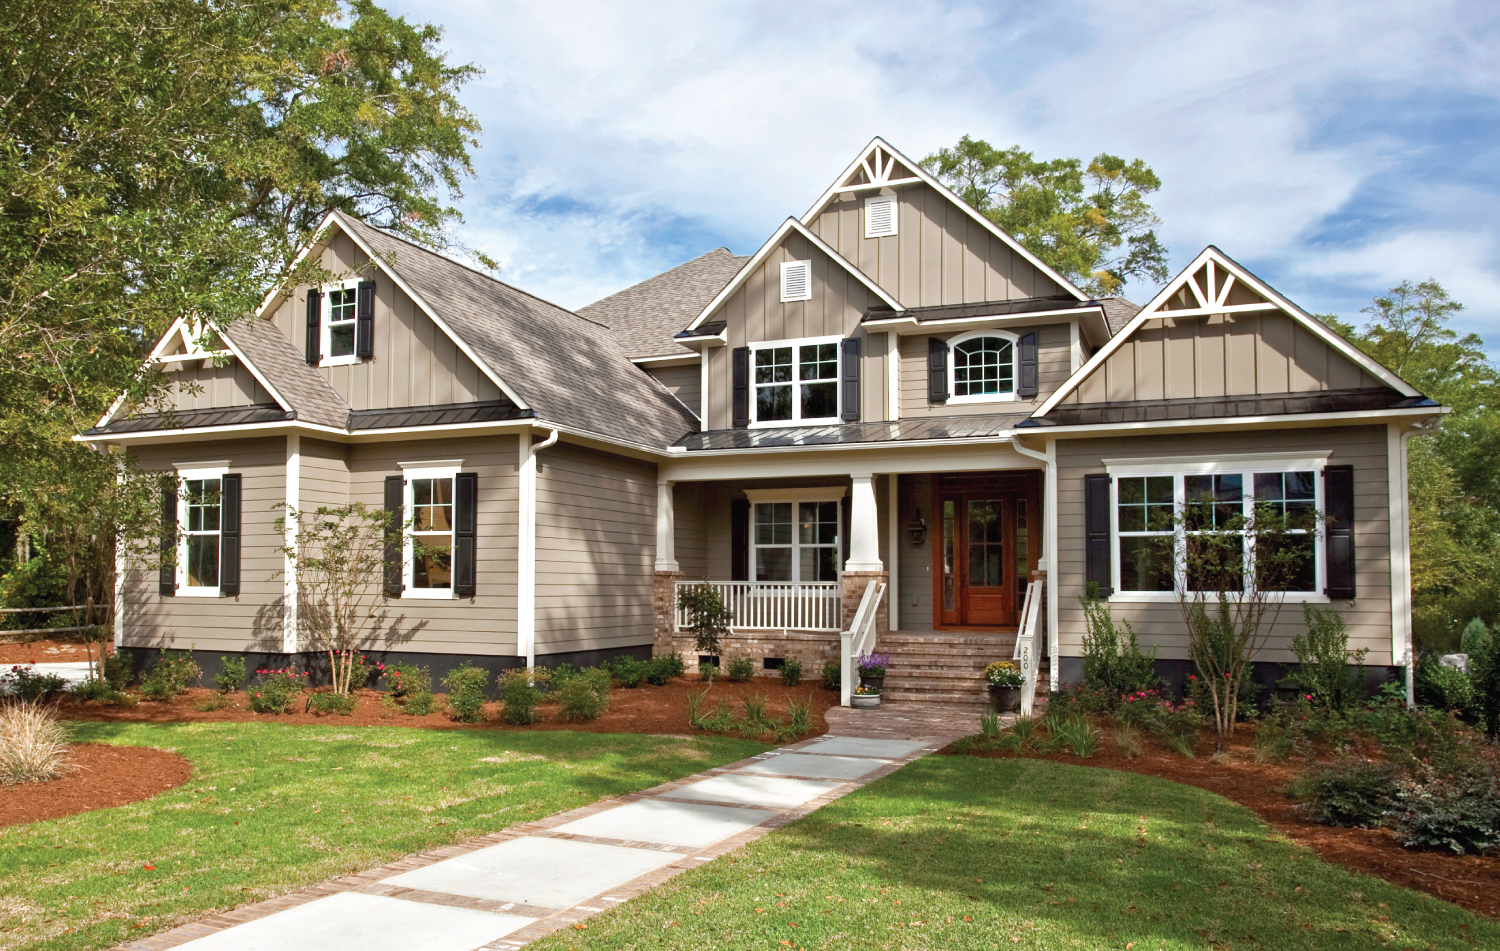 4bedroom House Plans  America's Home Place